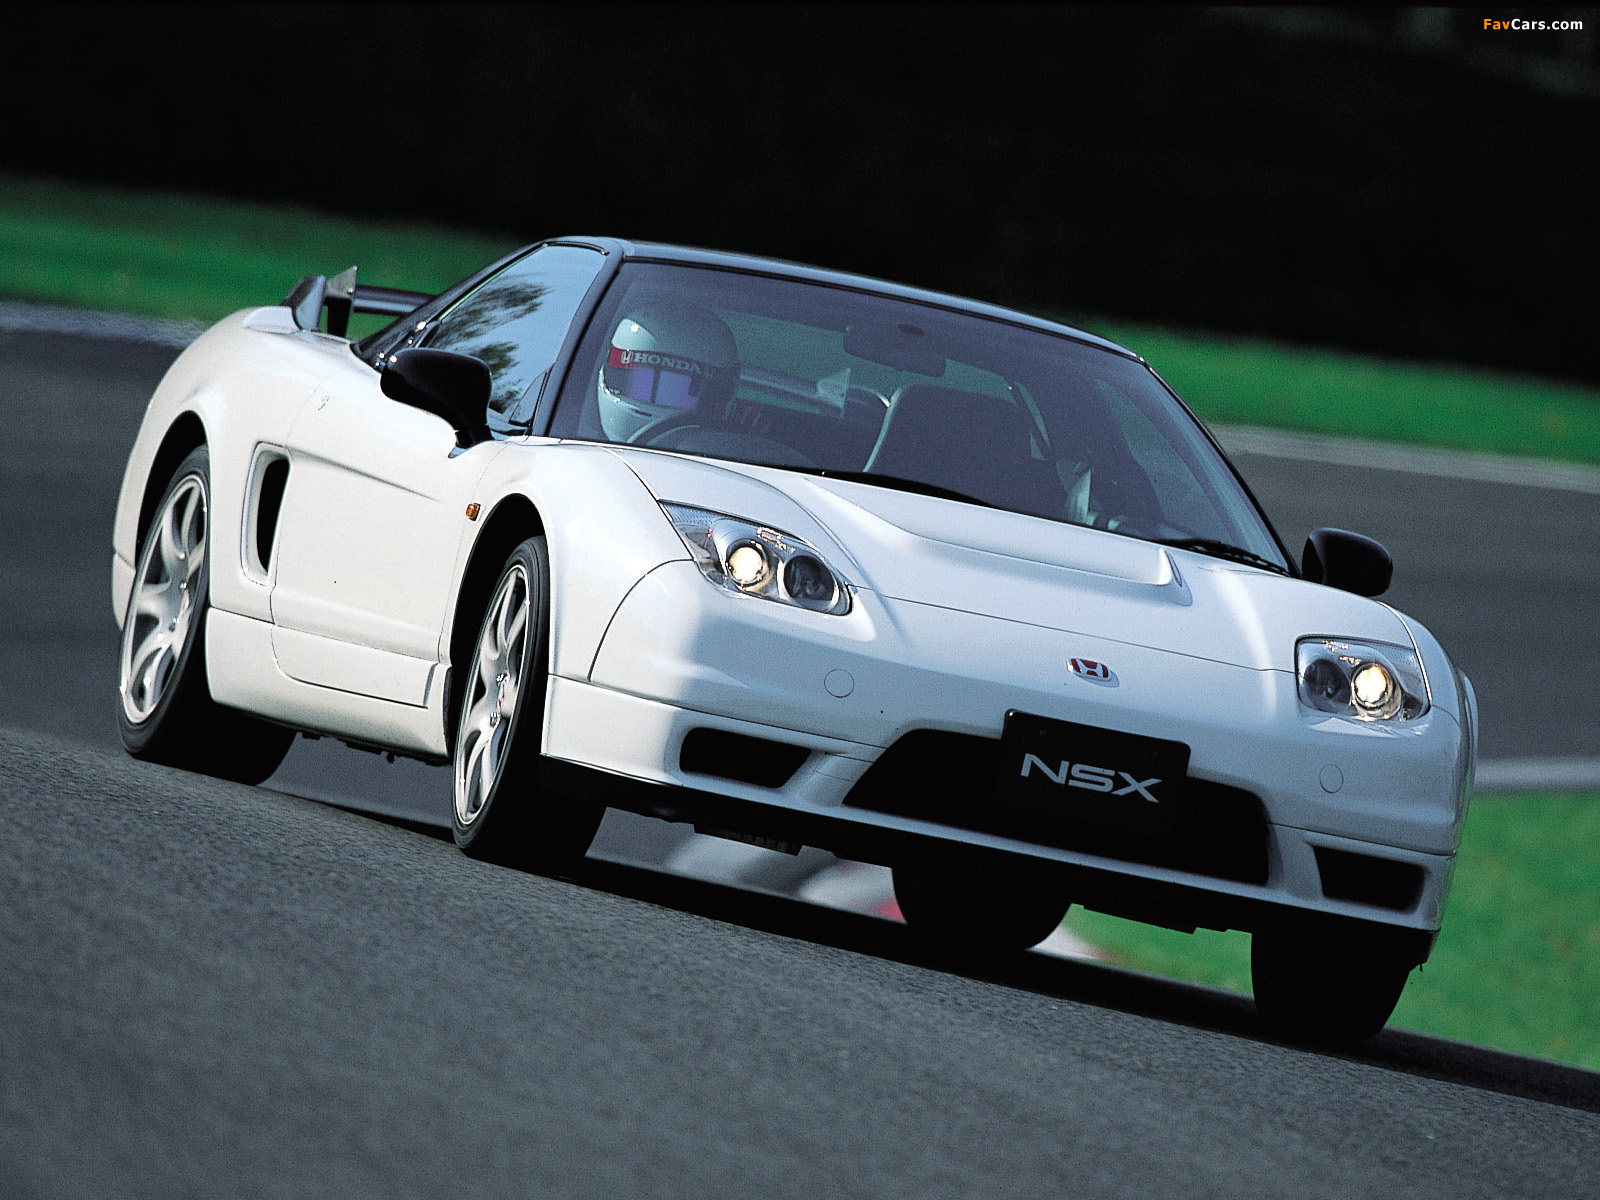 Honda Nsx R Wallpaper Images & Pictures - Becuo